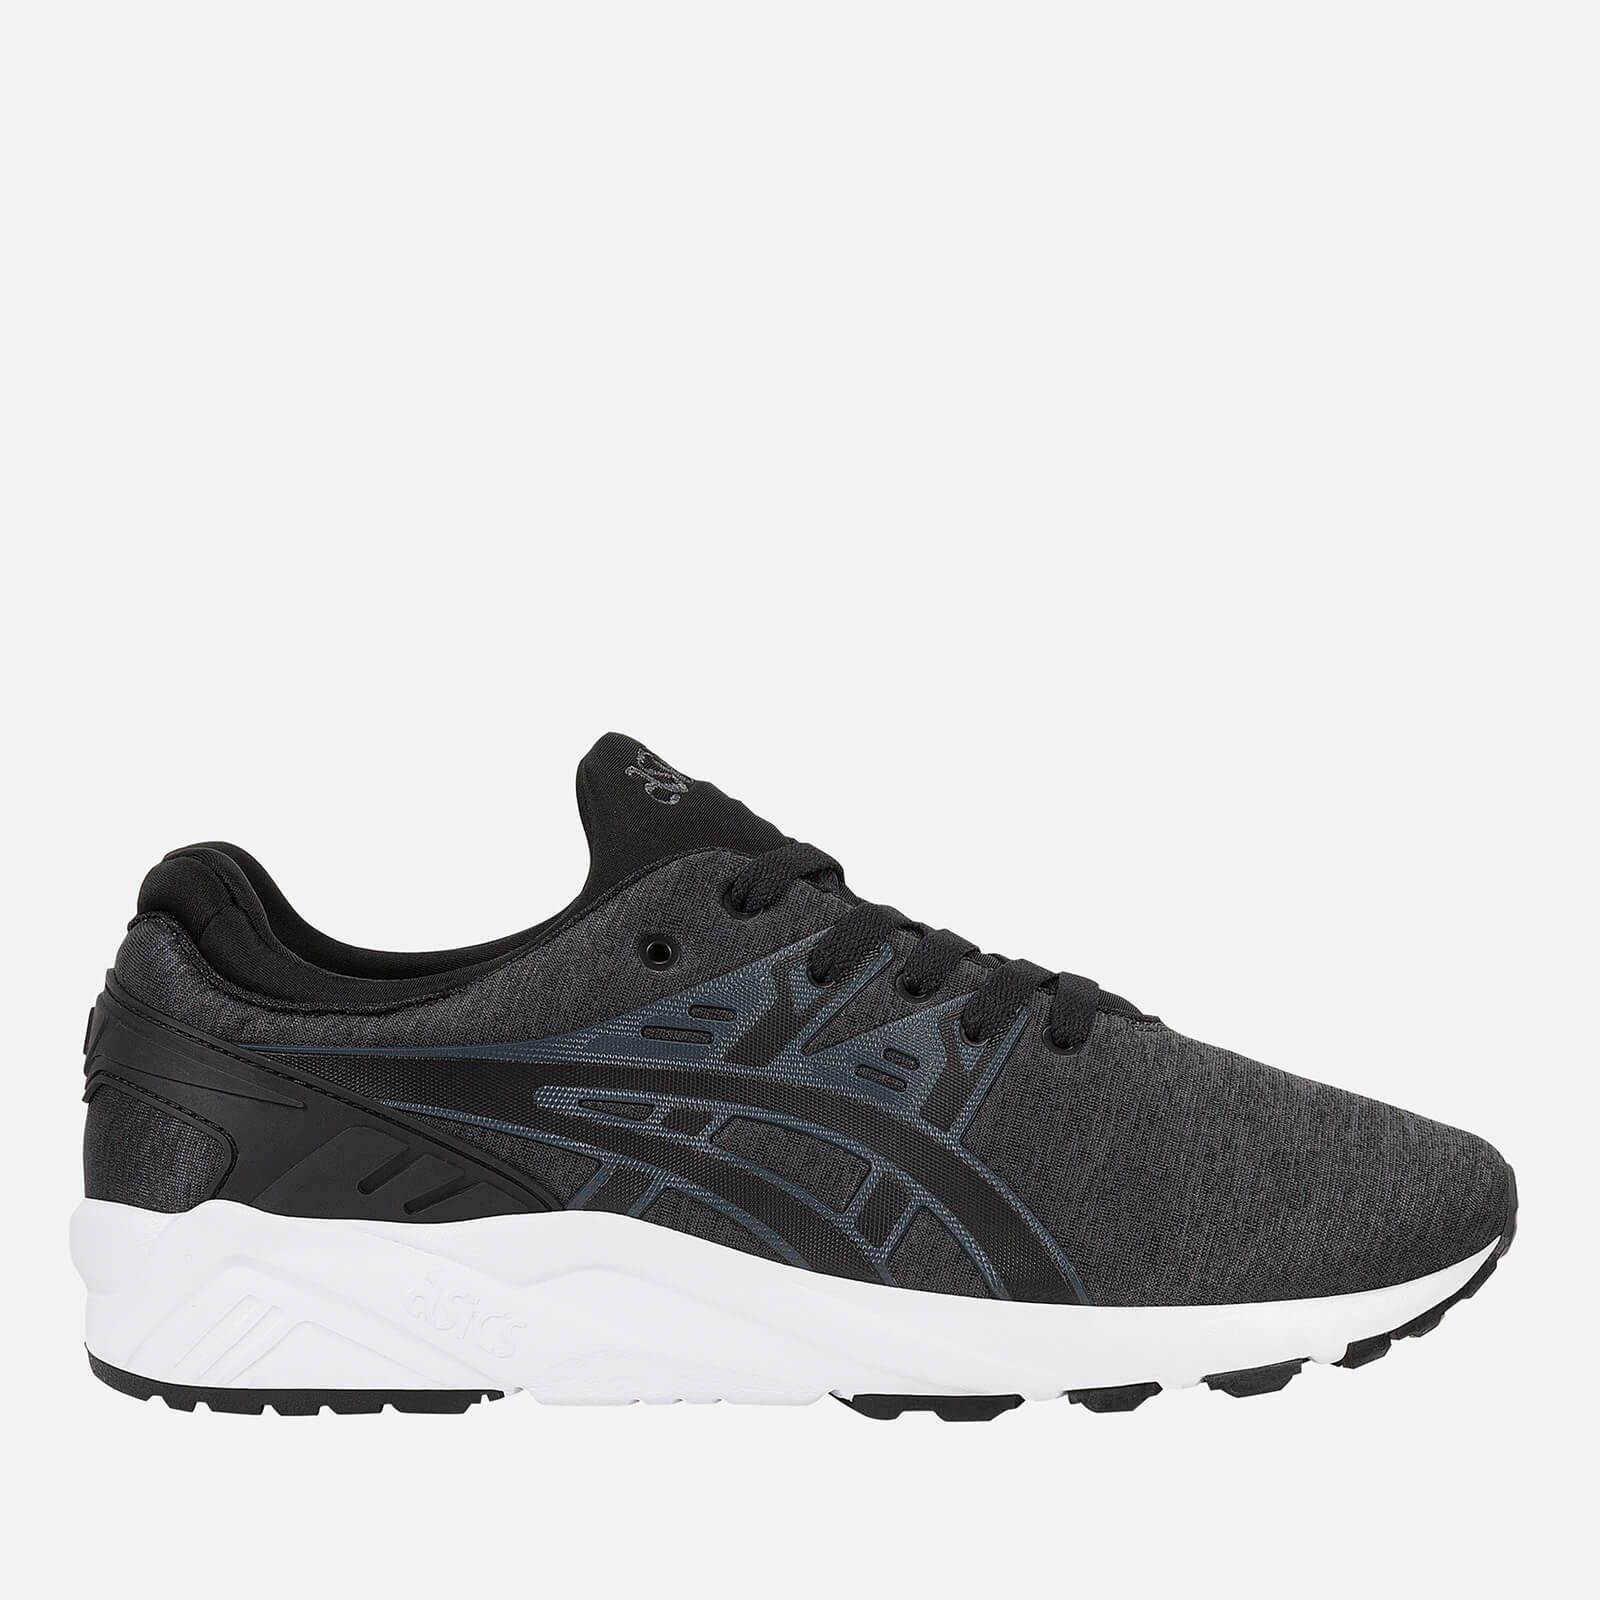 d40ae4d93 Asics Lifestyle Men s Gel-Kayano Evo Trainers - Dark Grey Black - Free UK  Delivery over £50